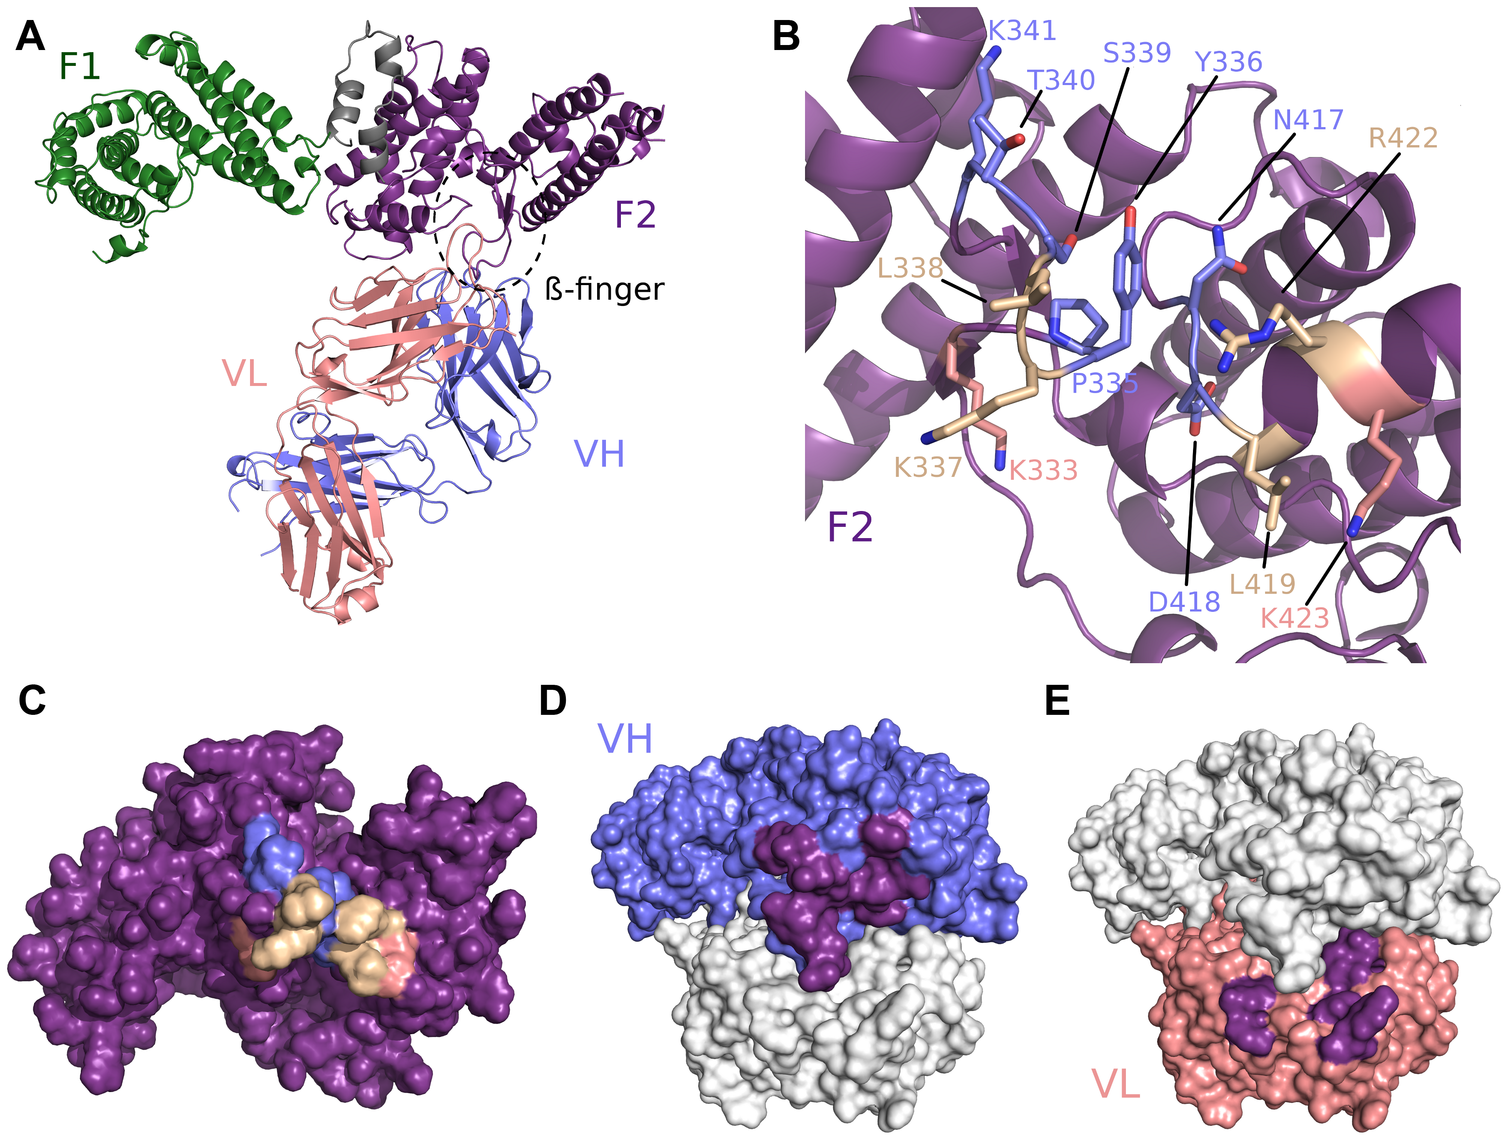 Crystal structure of RII/R217 Fab complex.